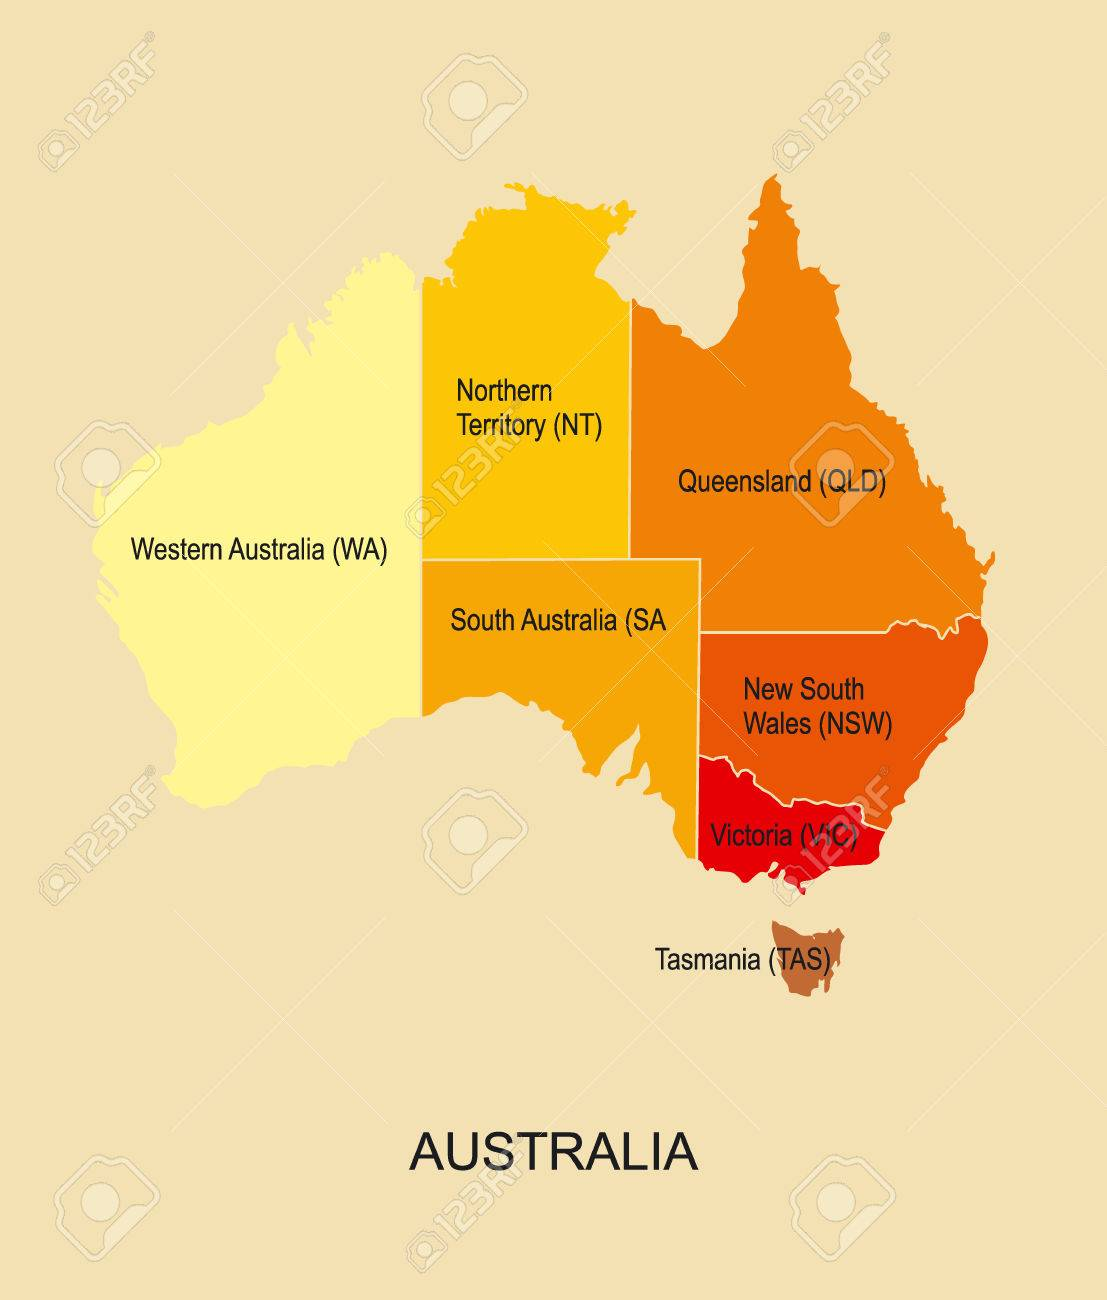 Australia Map Regions.Australia Map With Regions Royalty Free Cliparts Vectors And Stock